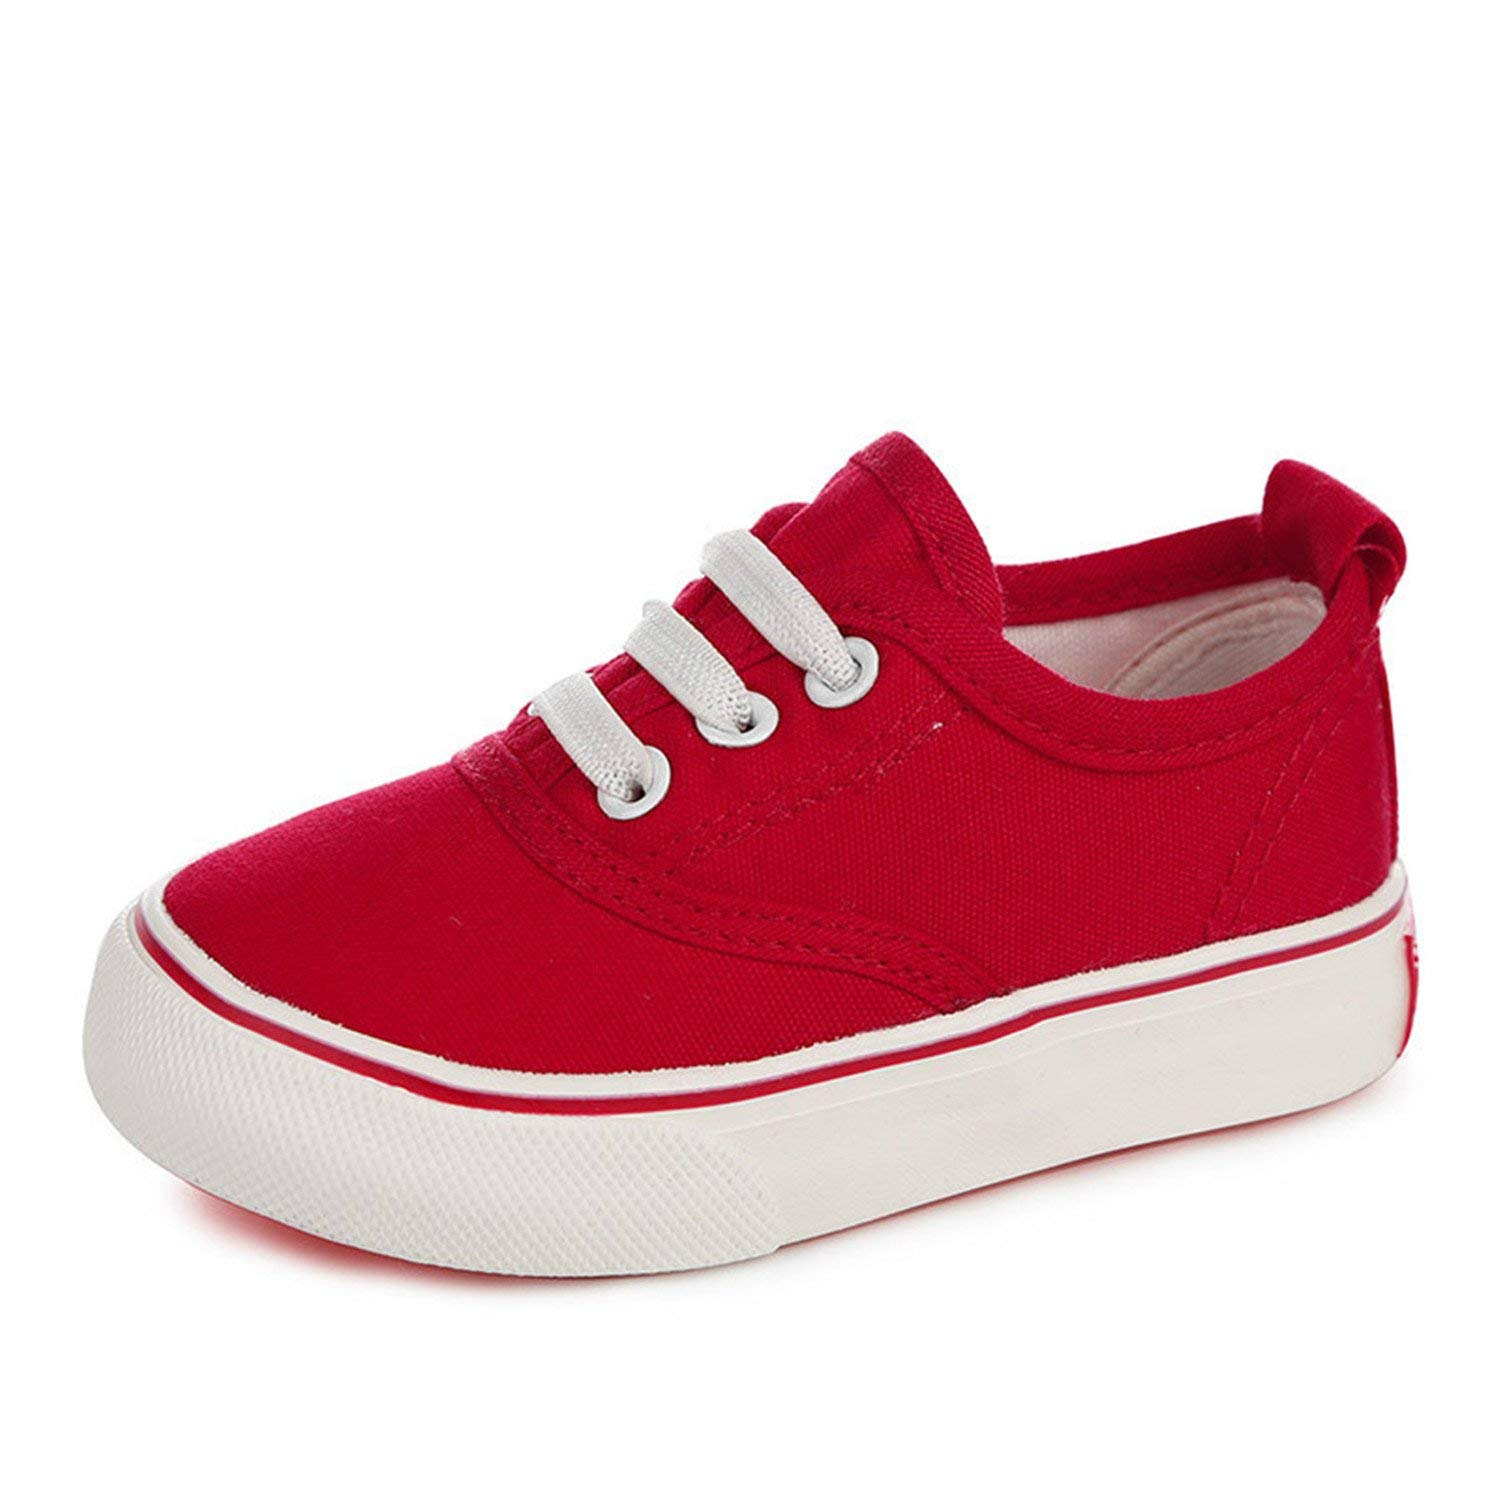 bc9825cd38e05 Get Quotations · Batsomer Children Canvas Shoes Kids Shoes for Girl White  Boys Sneakers Toddler Girls Baby Shoes